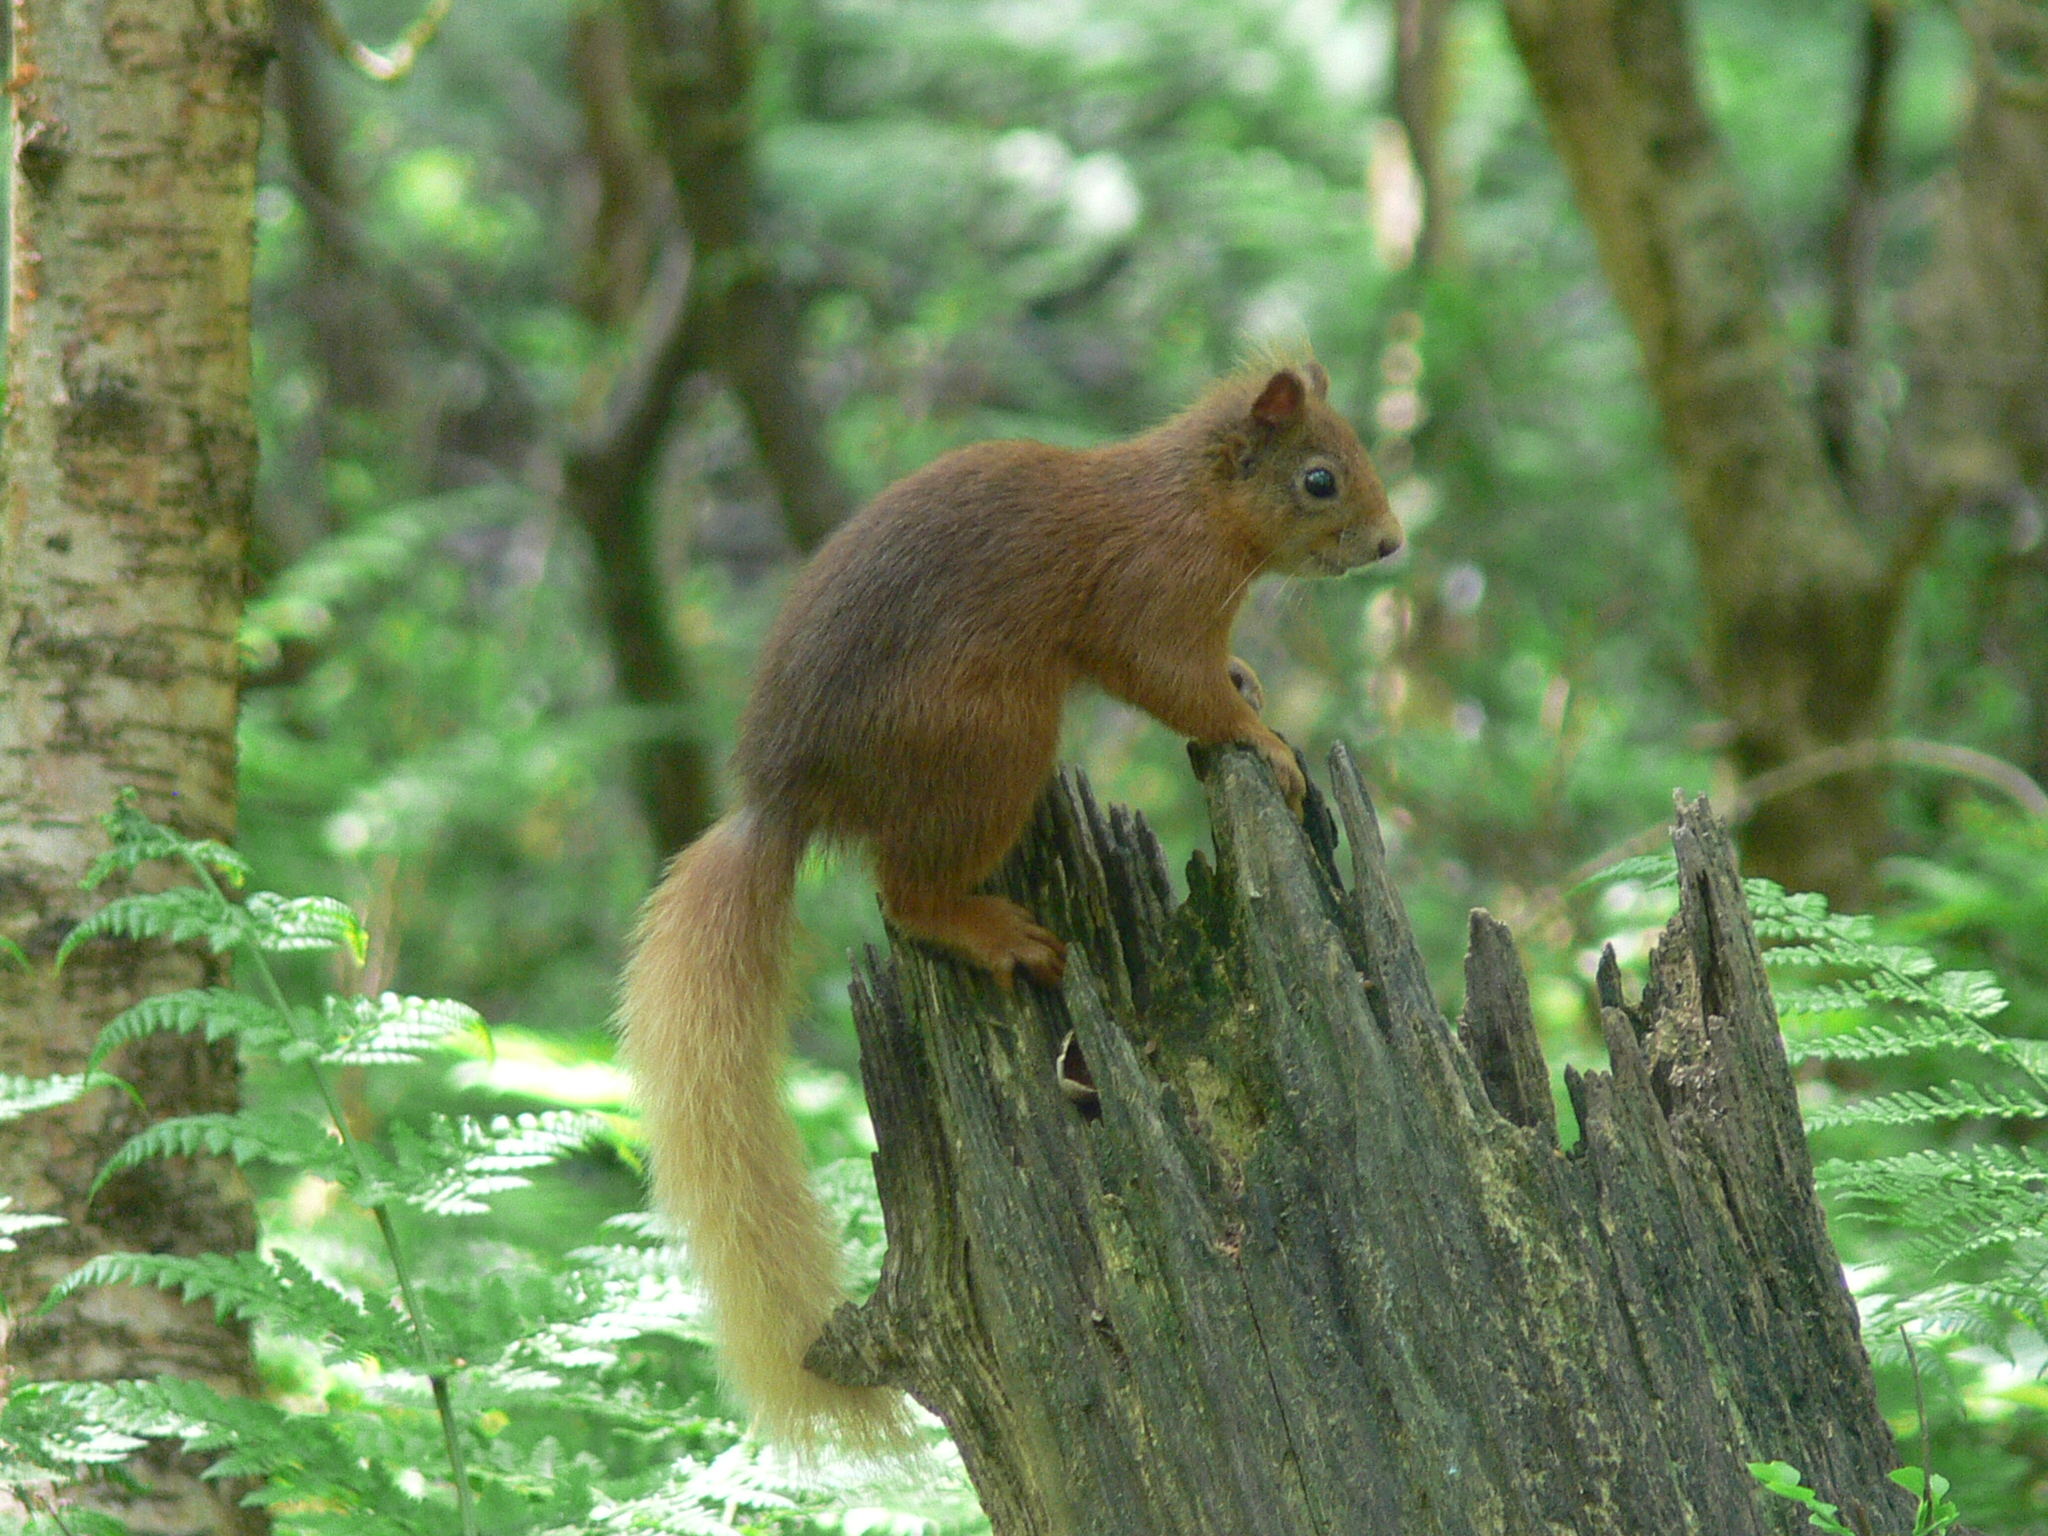 Red Squirrel on Tree Trunk - August 2014